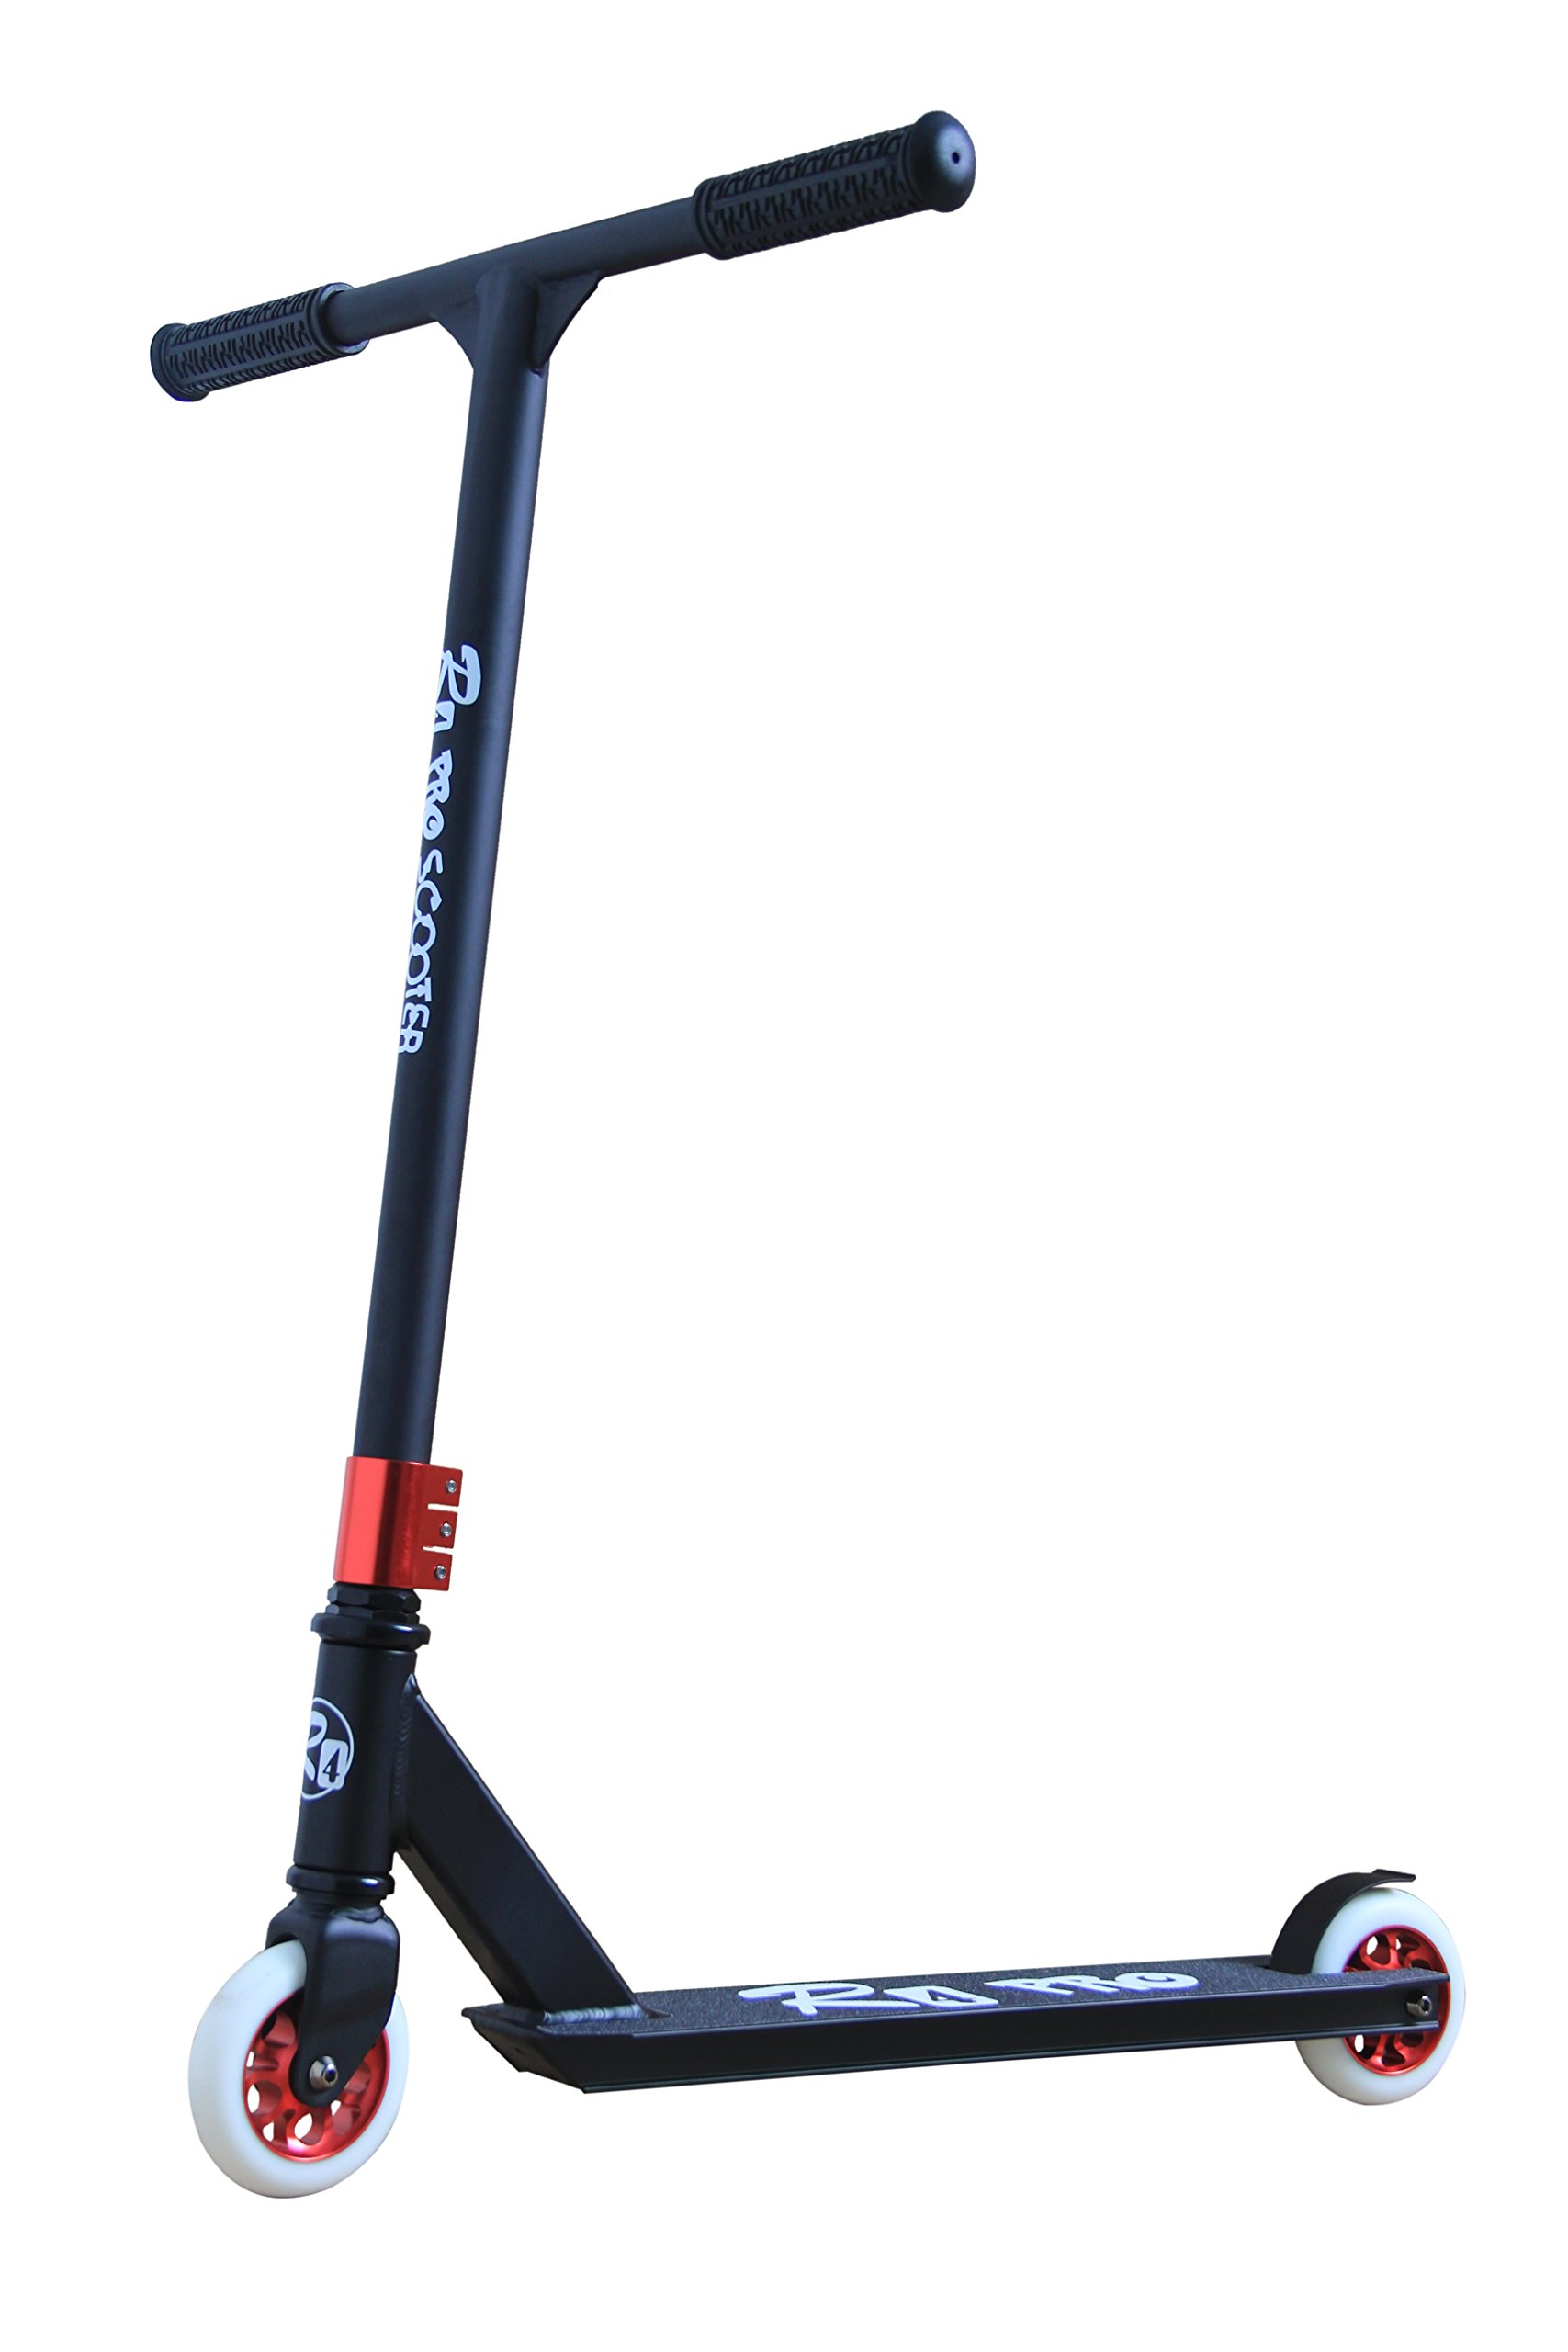 R4 Aluminum Pro Complete 6061 Stunt Scooter, Matte Black & Red